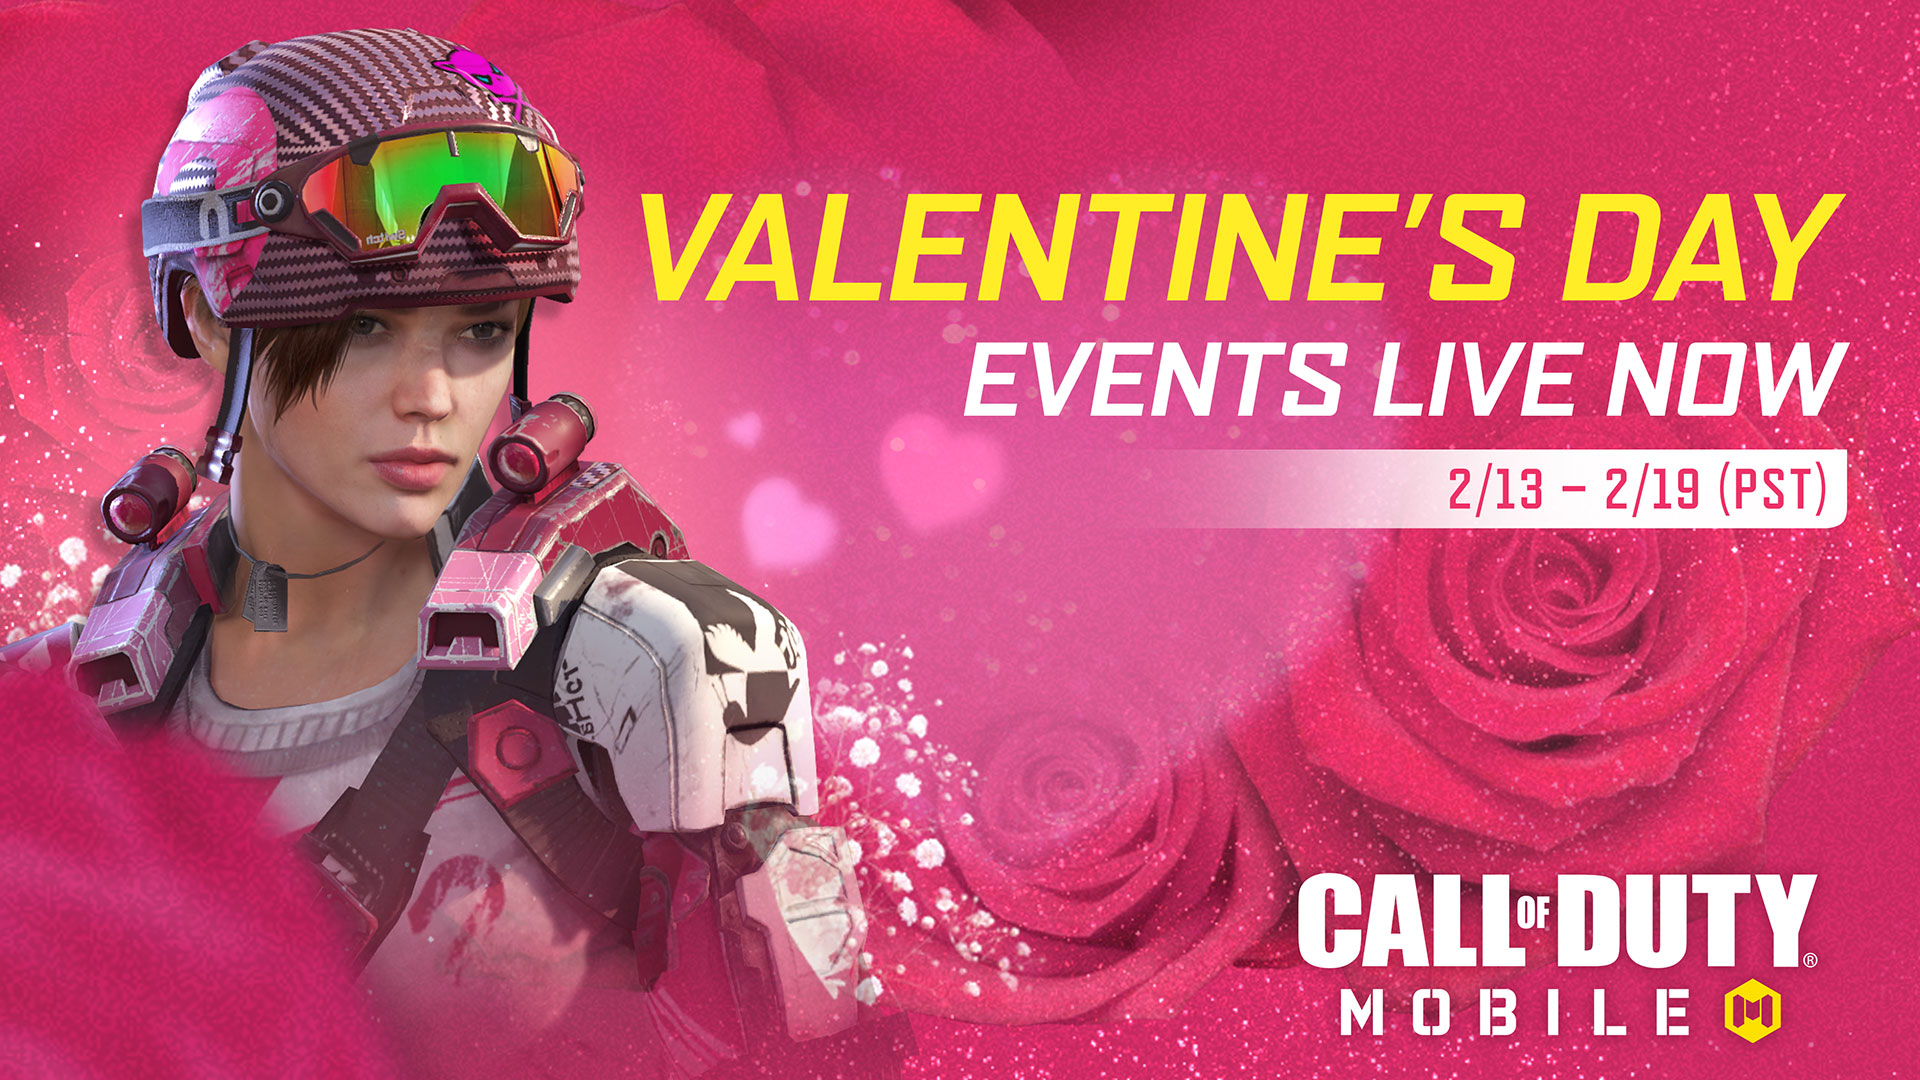 This Week in Call of Duty® - February 3 - Image 3